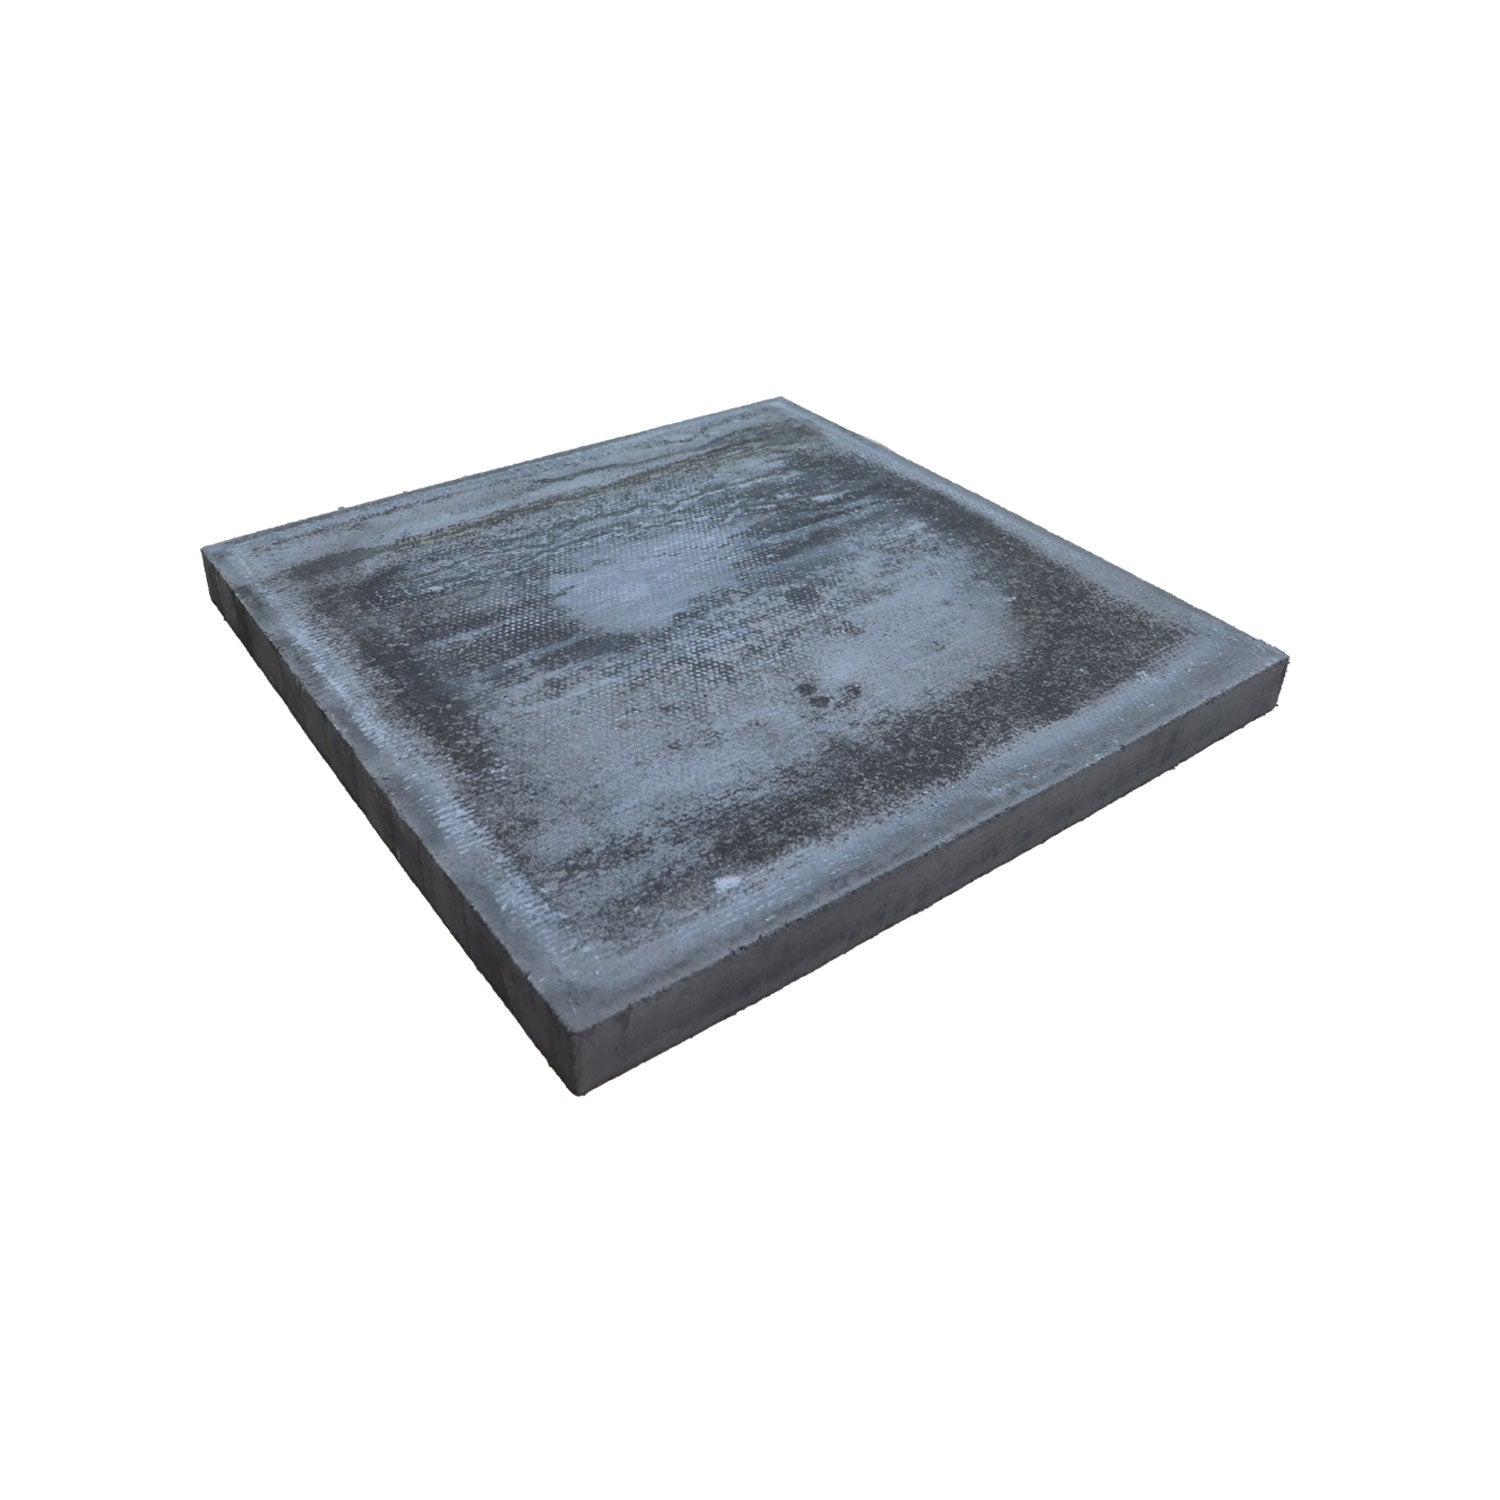 Grey Slab 600mm x 600mm x 35mm (26PK)